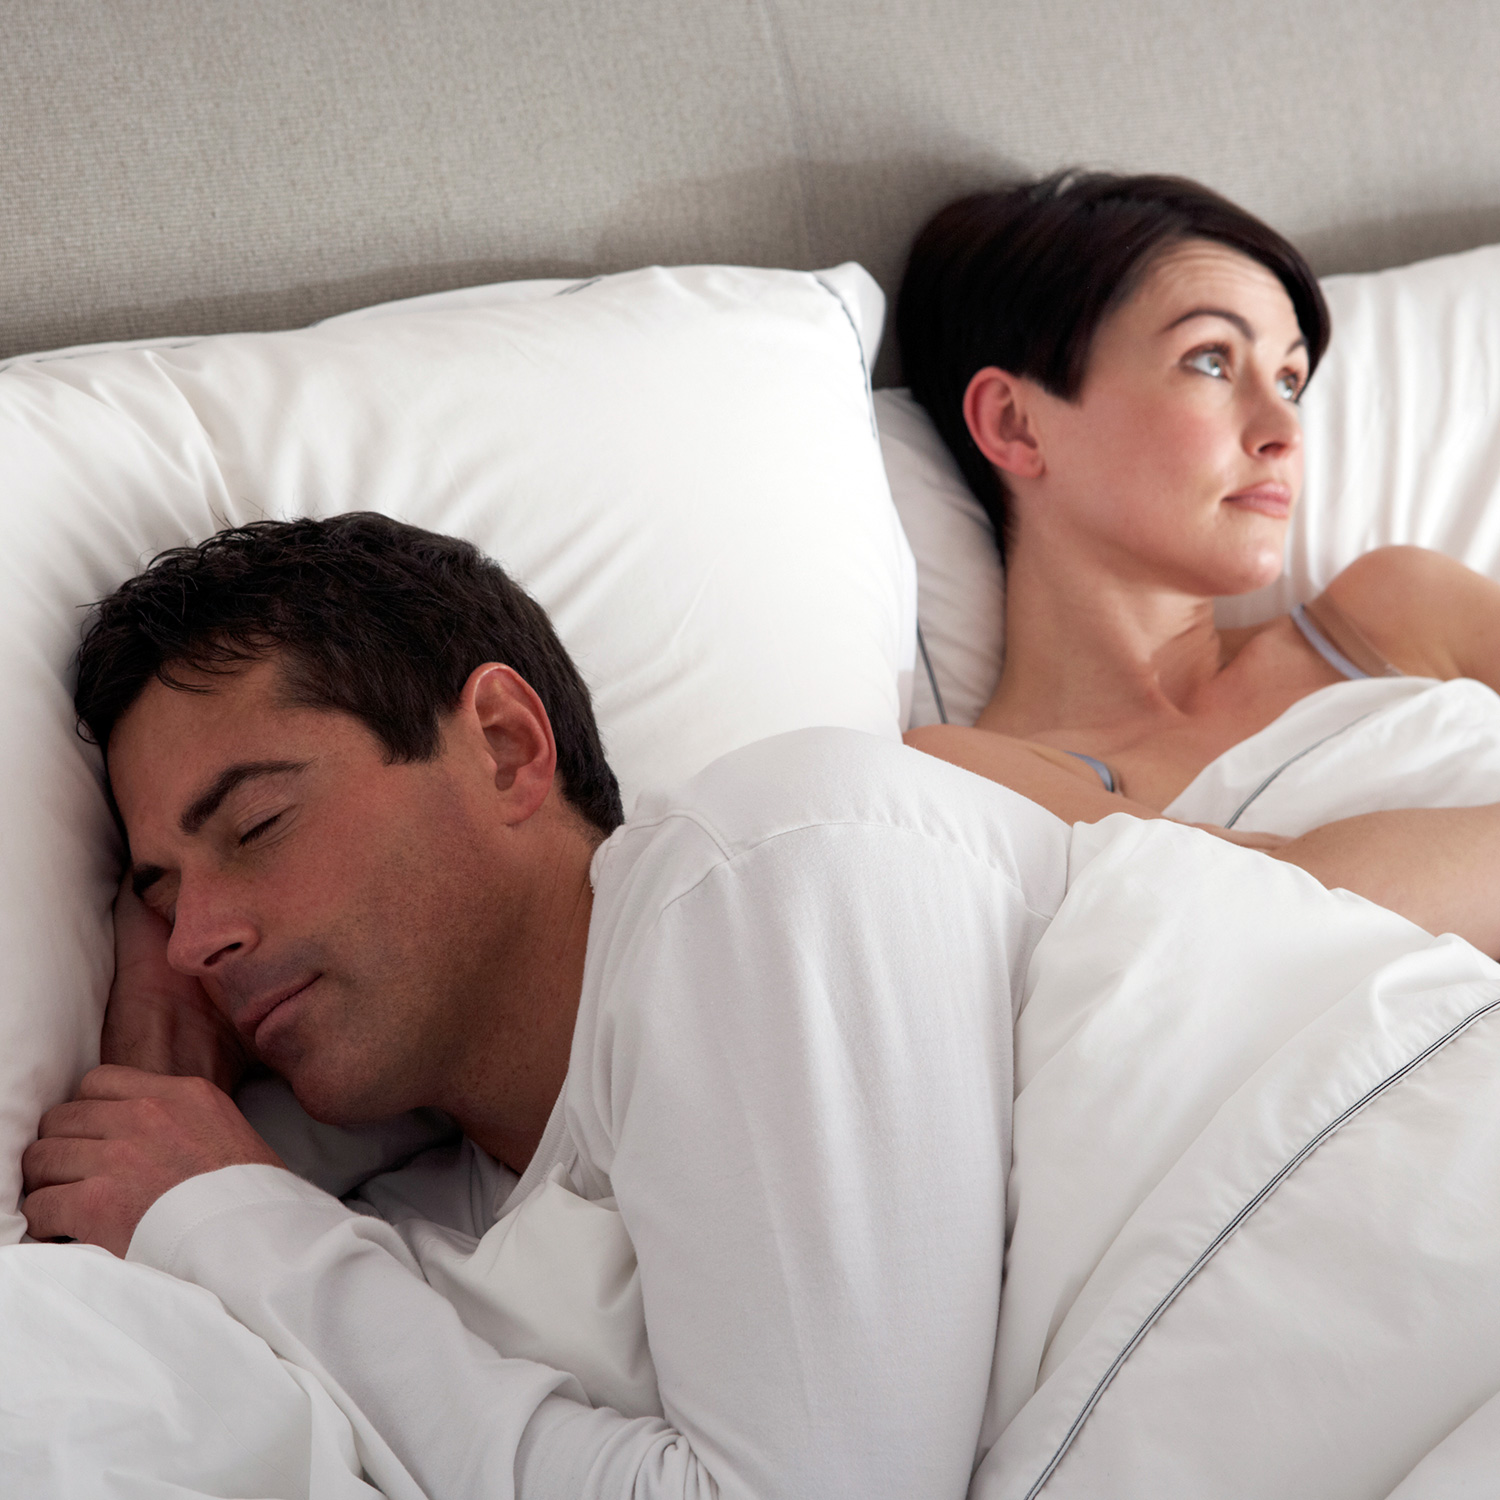 relationship-problems-couple-bed